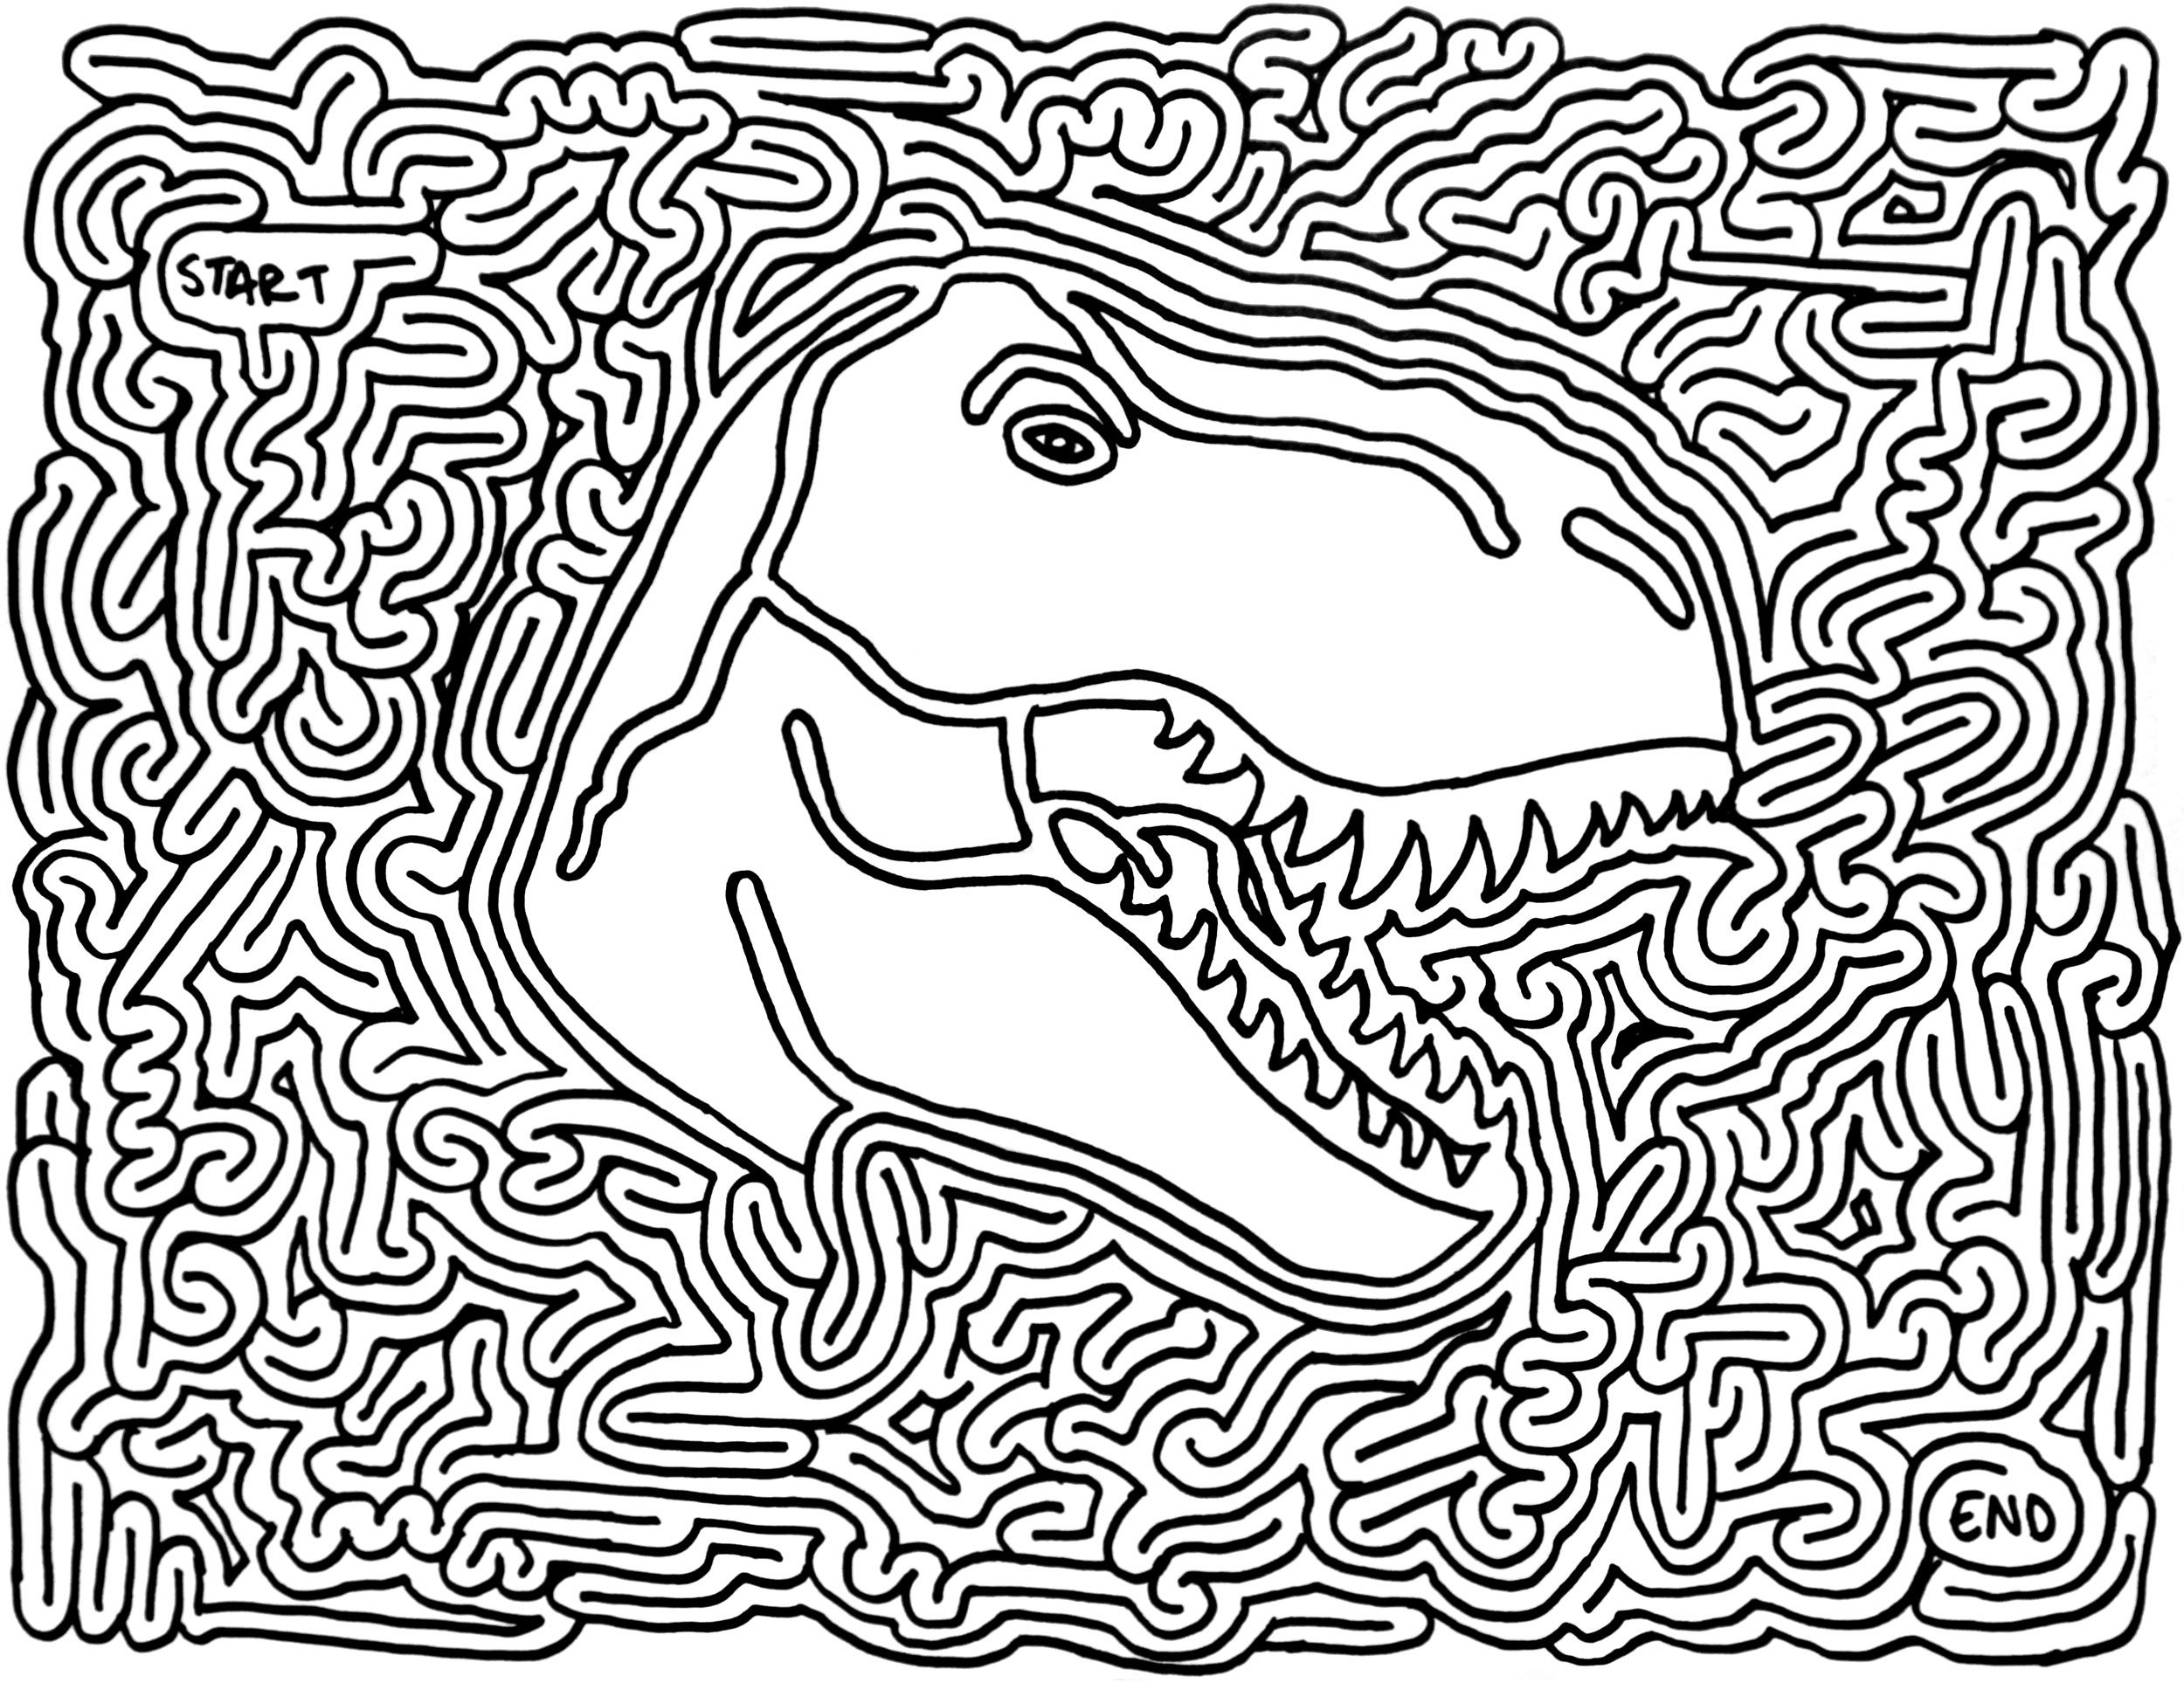 hard dinosaur coloring pages favors dinosaur printable maze printable mazes maze dinosaur coloring pages hard